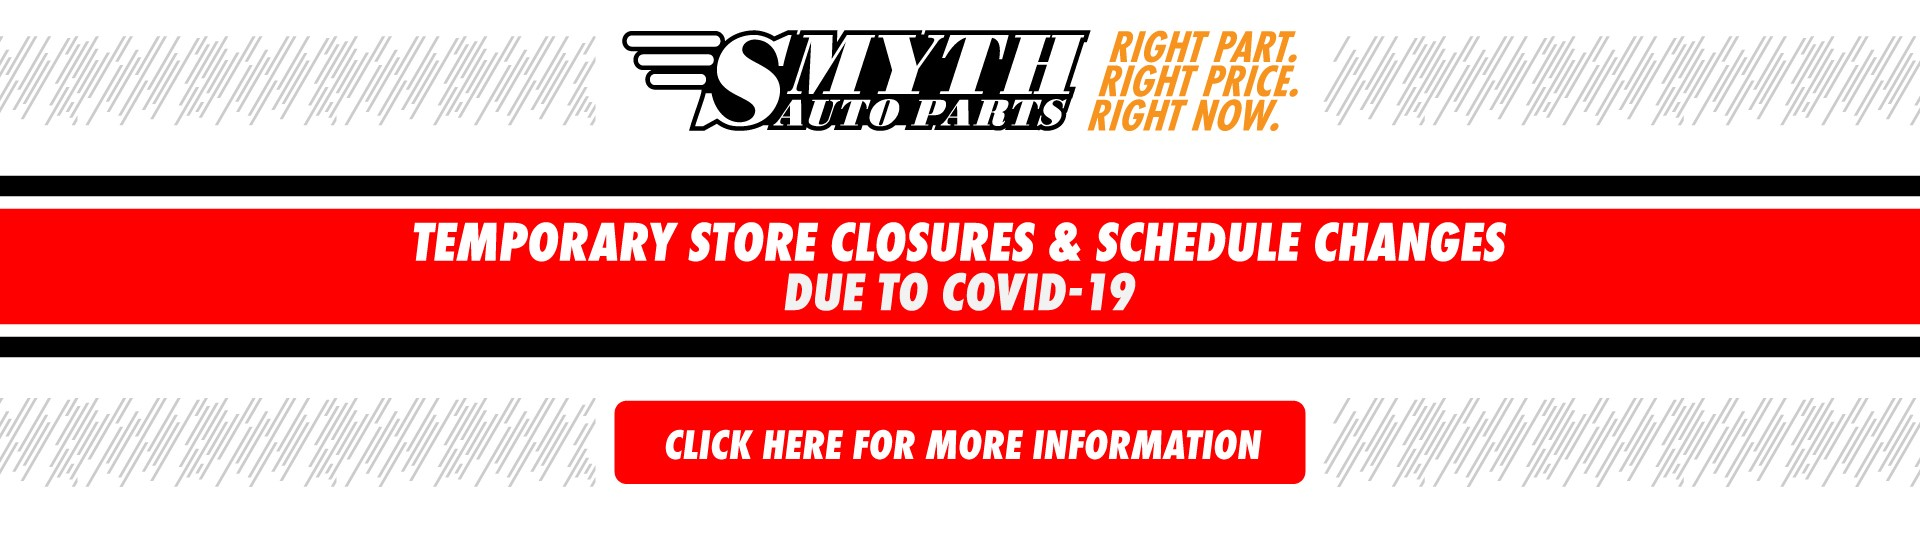 Temporary Store Closures Due to Covid 19